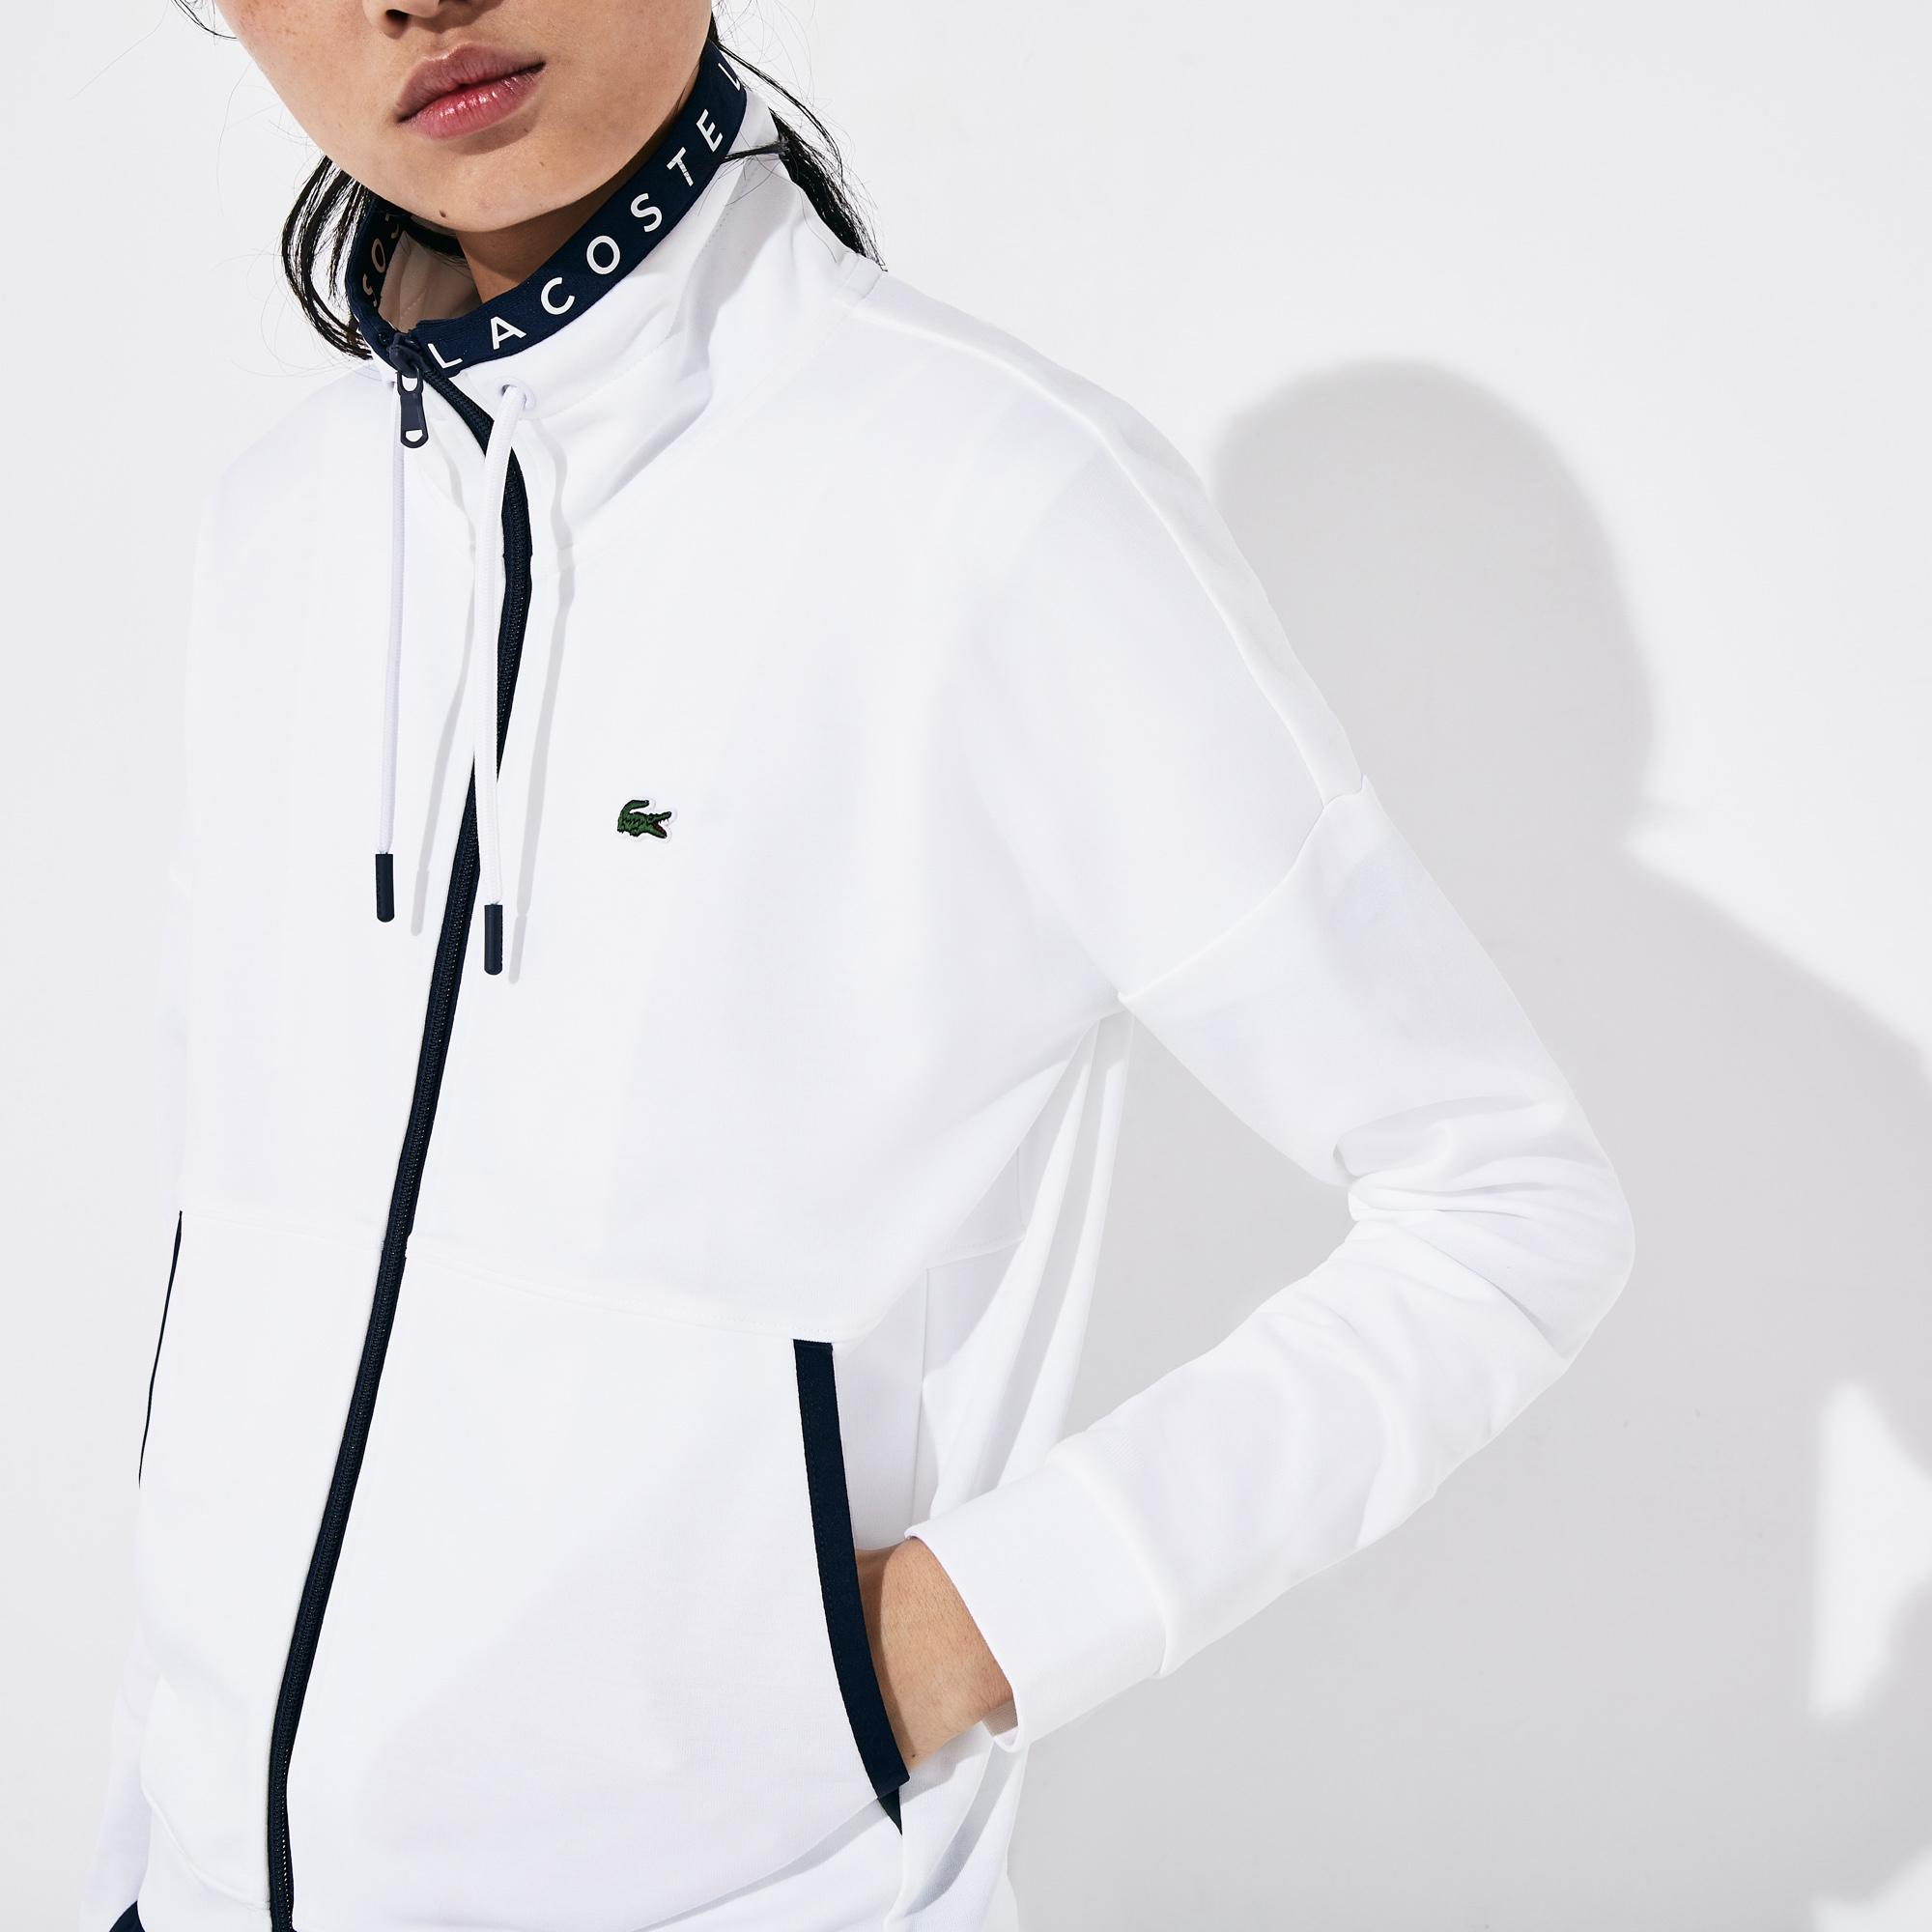 Lacoste Women's SPORT Zip-Up Tennis Sweatshirt